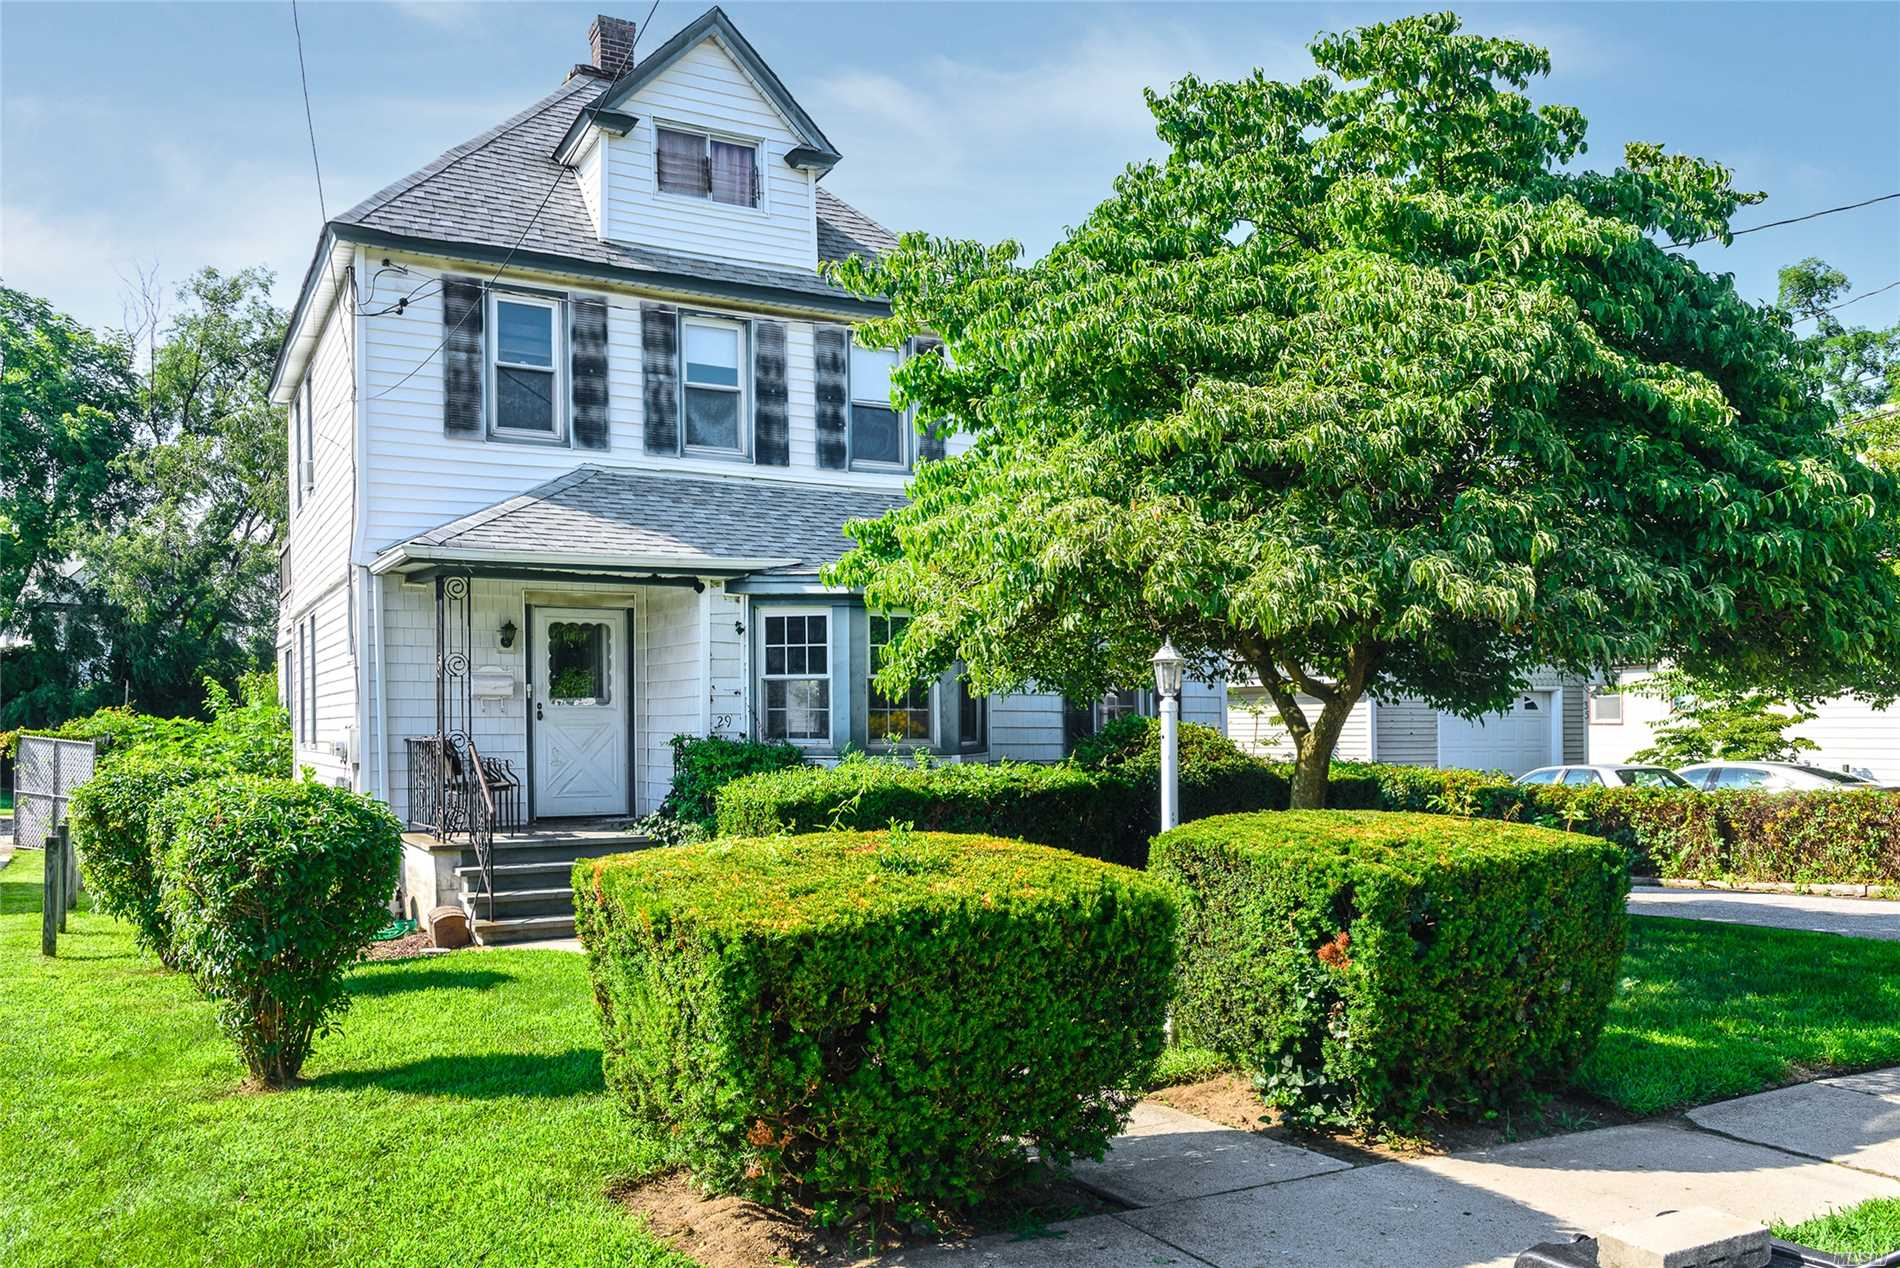 Legal 2-Family. 1st Flr: Entry Foyer, Spacious Living Rm, Formal Dining Rm, Eik, 2 Bdrms, Office, Bath, Laundry. 2nd Flr: Living Rm, Open Eik W/Island, 2 Bdrms, Bath & Walk-Up Attic W/Walk-In-Closet. Full Bsmnt, 2 Electric Panels, Cement Patio, Det Garage, Long Driveway, 170 Ft Deep Yard W/Fig & Chestnut Trees, Low Taxes & Convenient To Schools, Lirr, Shopping, Highways & Transportation. Needs Some Tlc - No Fha Loans Unless 203K Rehab Loan.